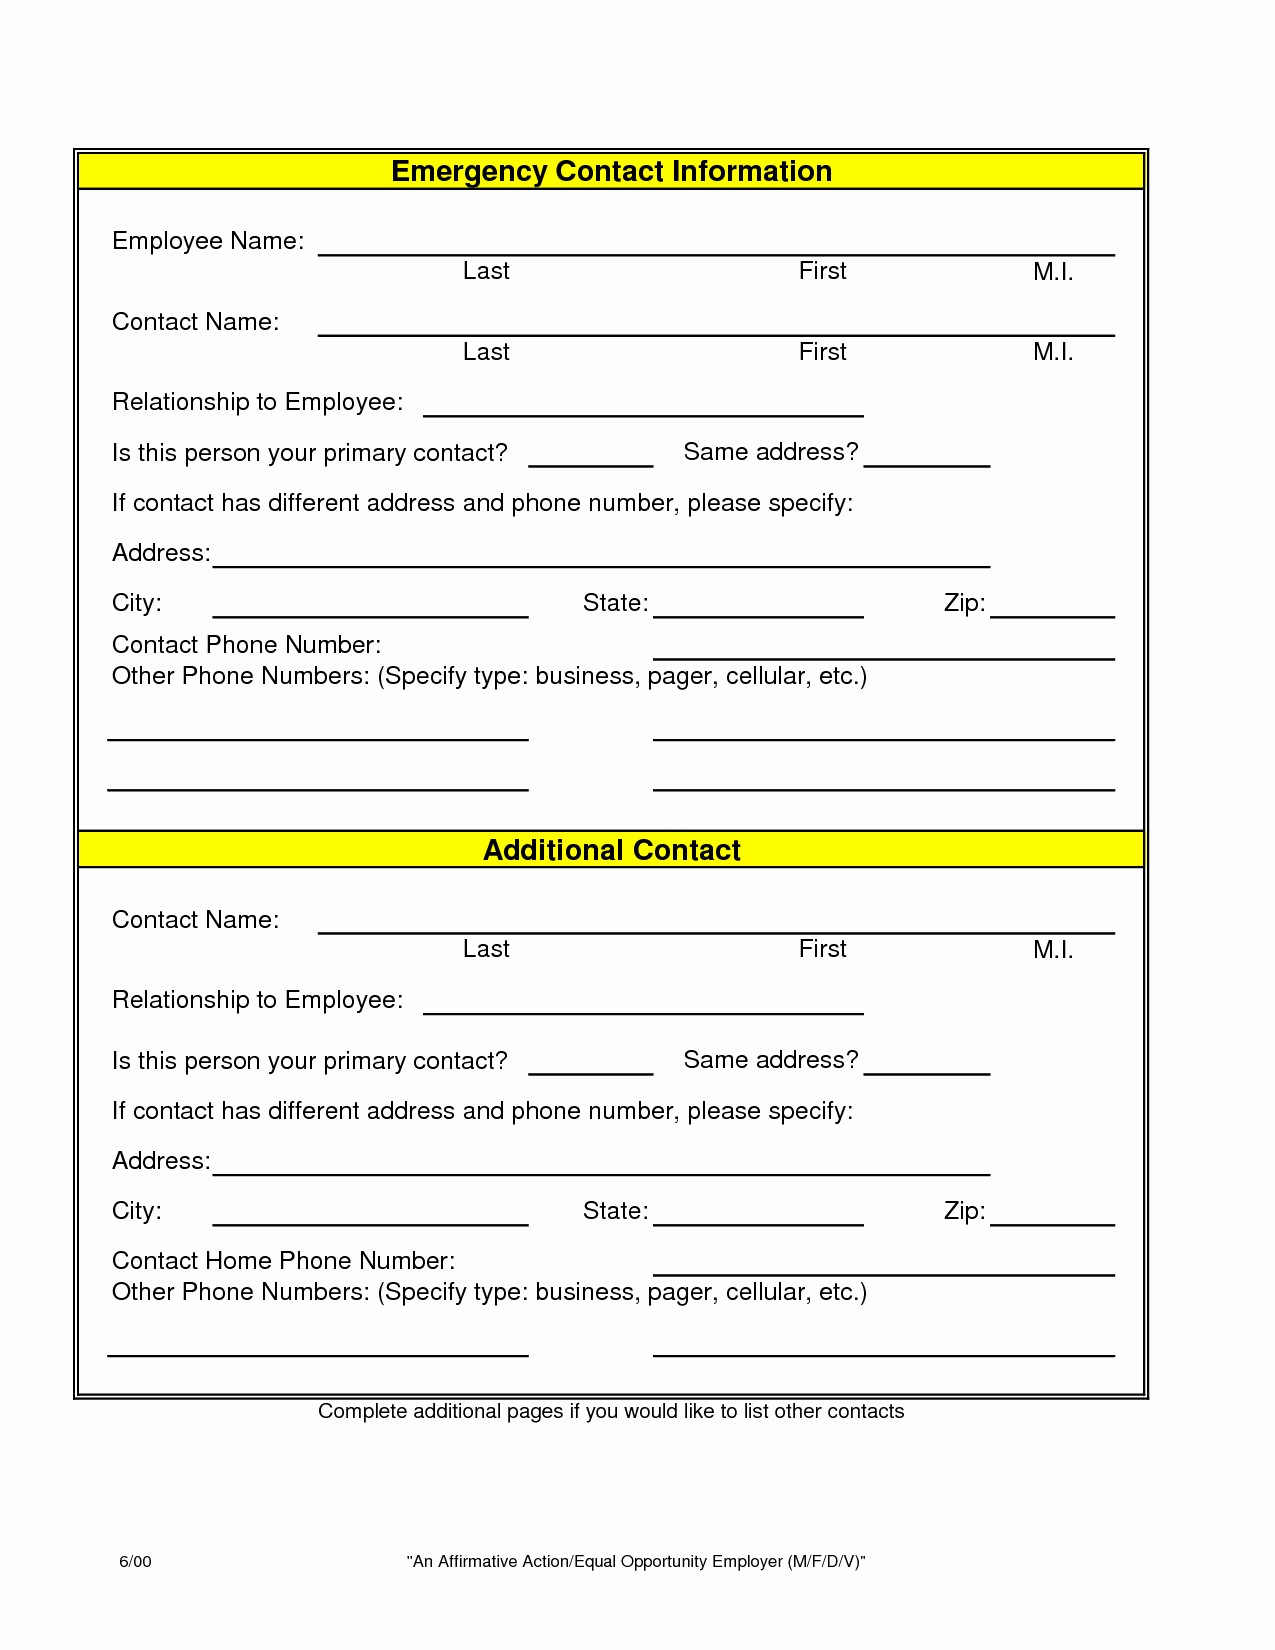 Employee Emergency Contact form Template Inspirational Index Of Cdn 9 2009 935